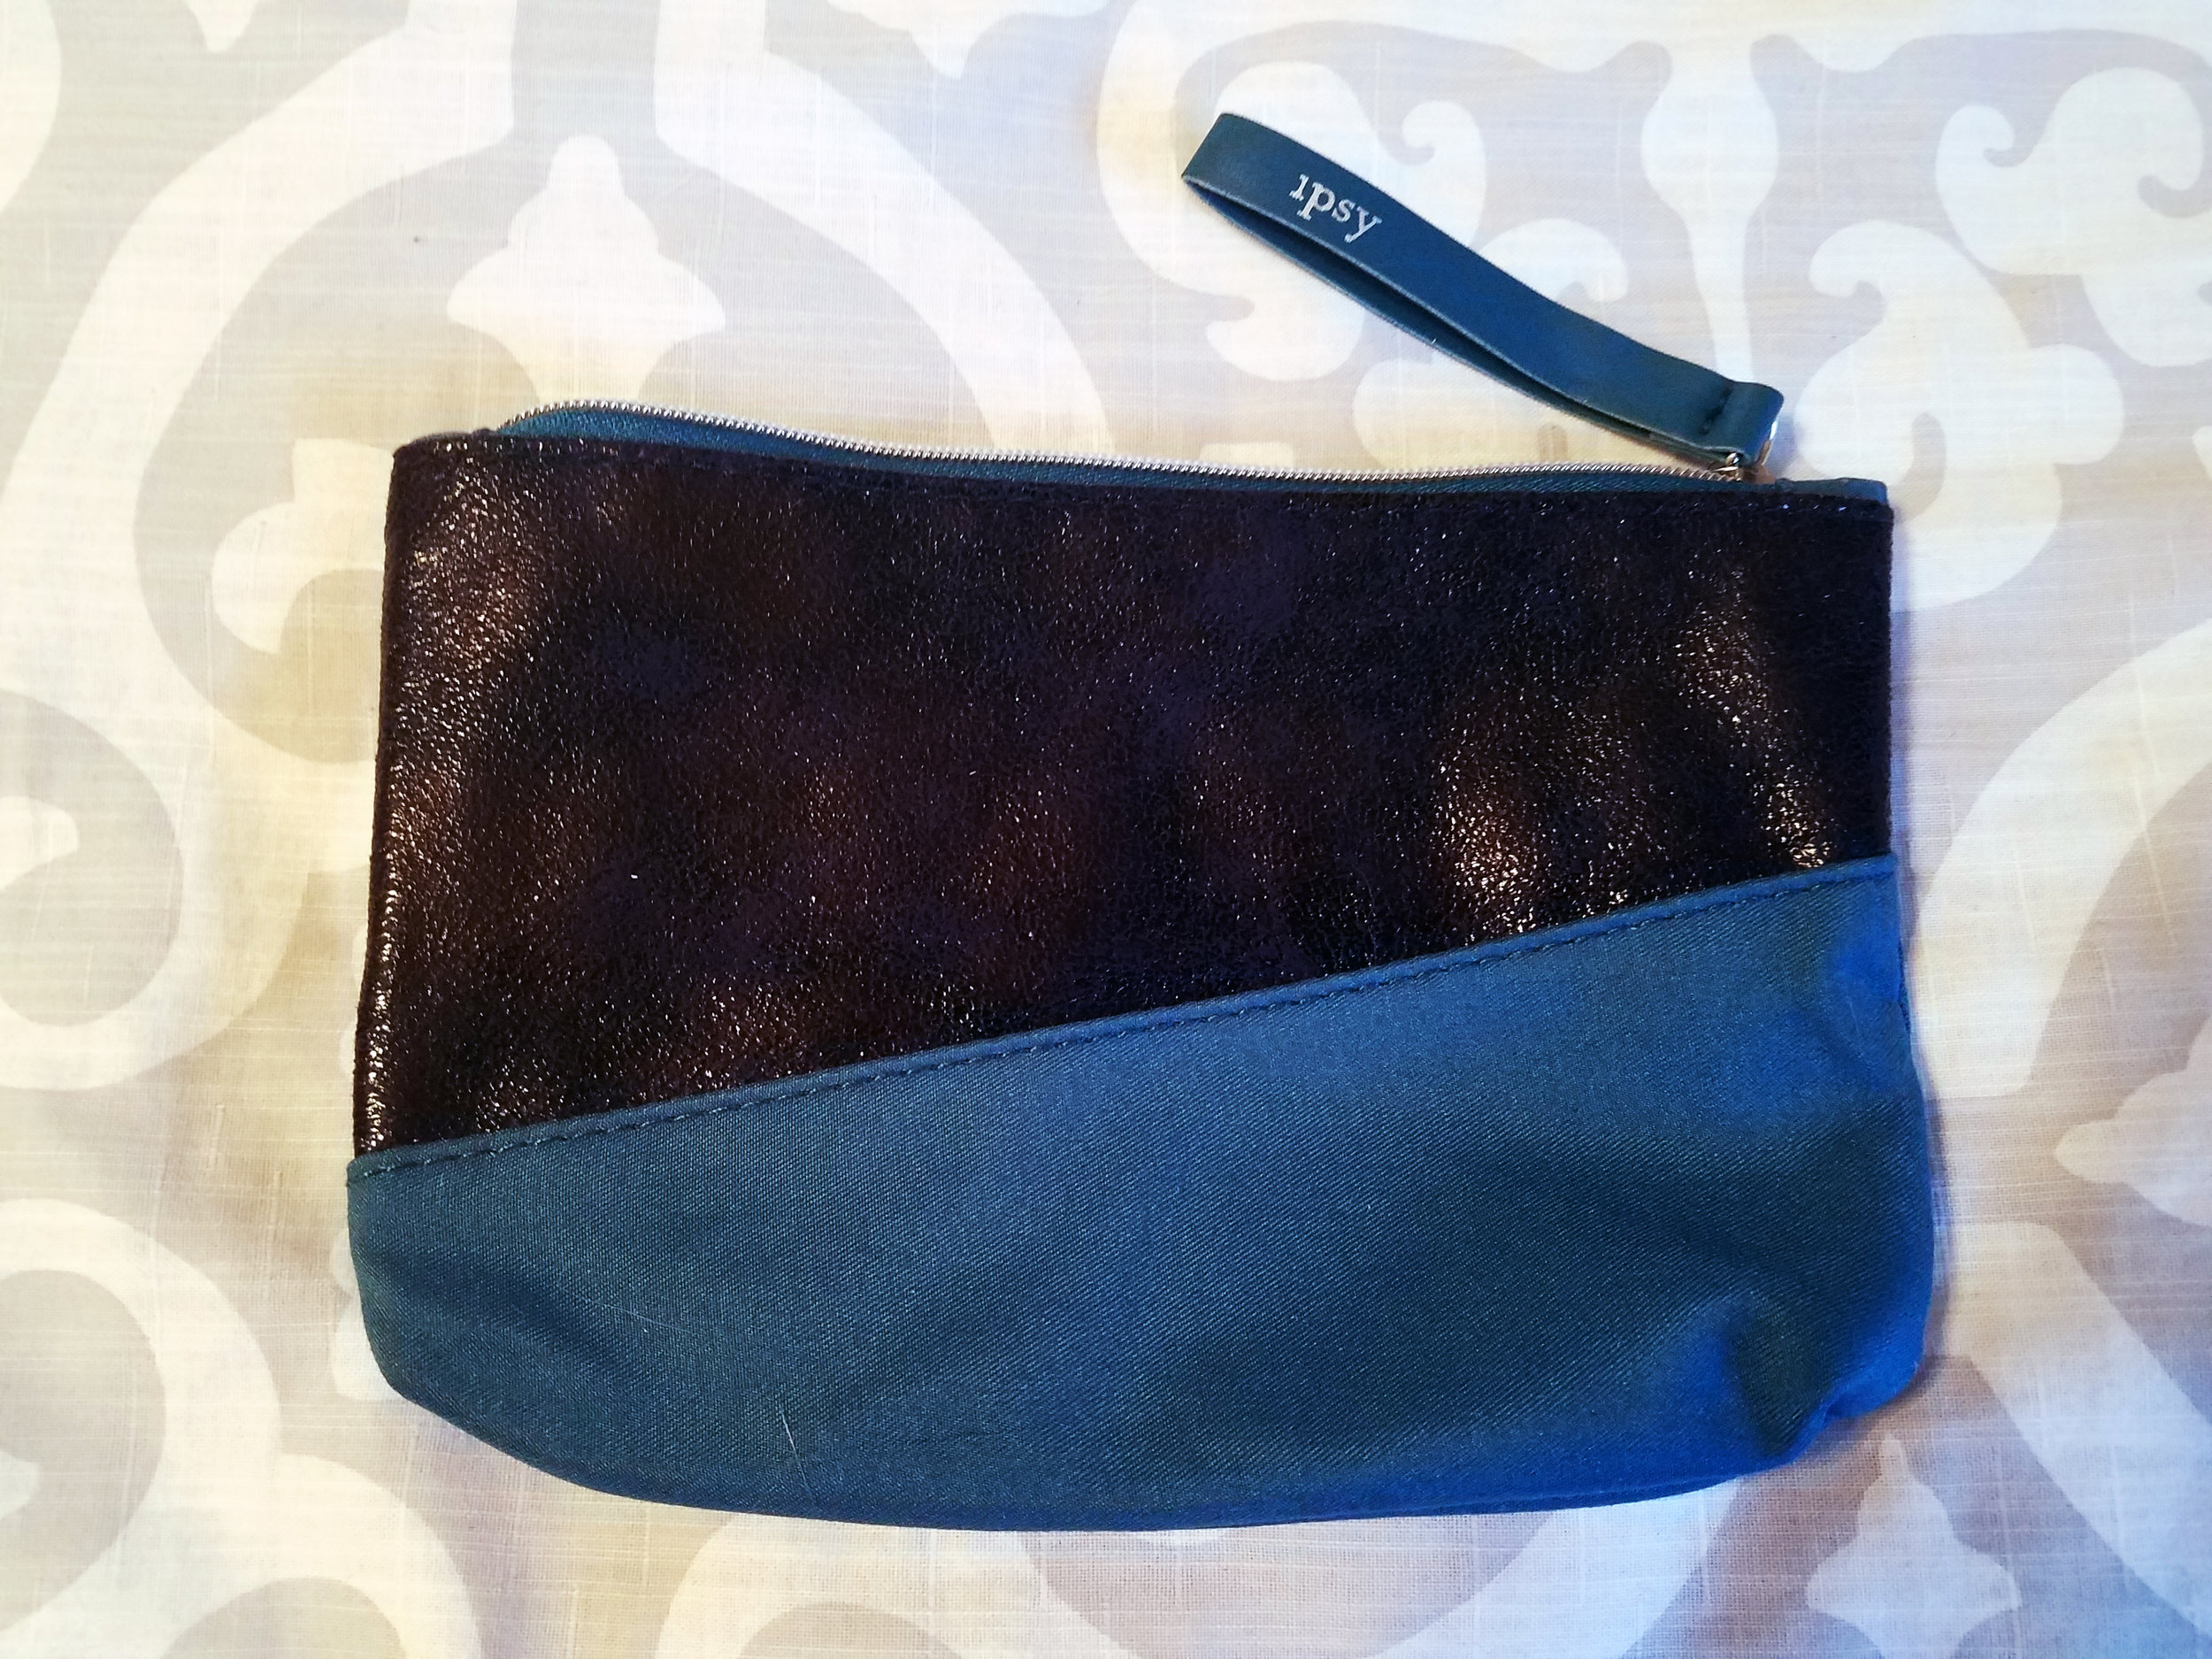 Novembers' bag features a two jewel-toned colored bag. Reg. Retail Price - $5.00